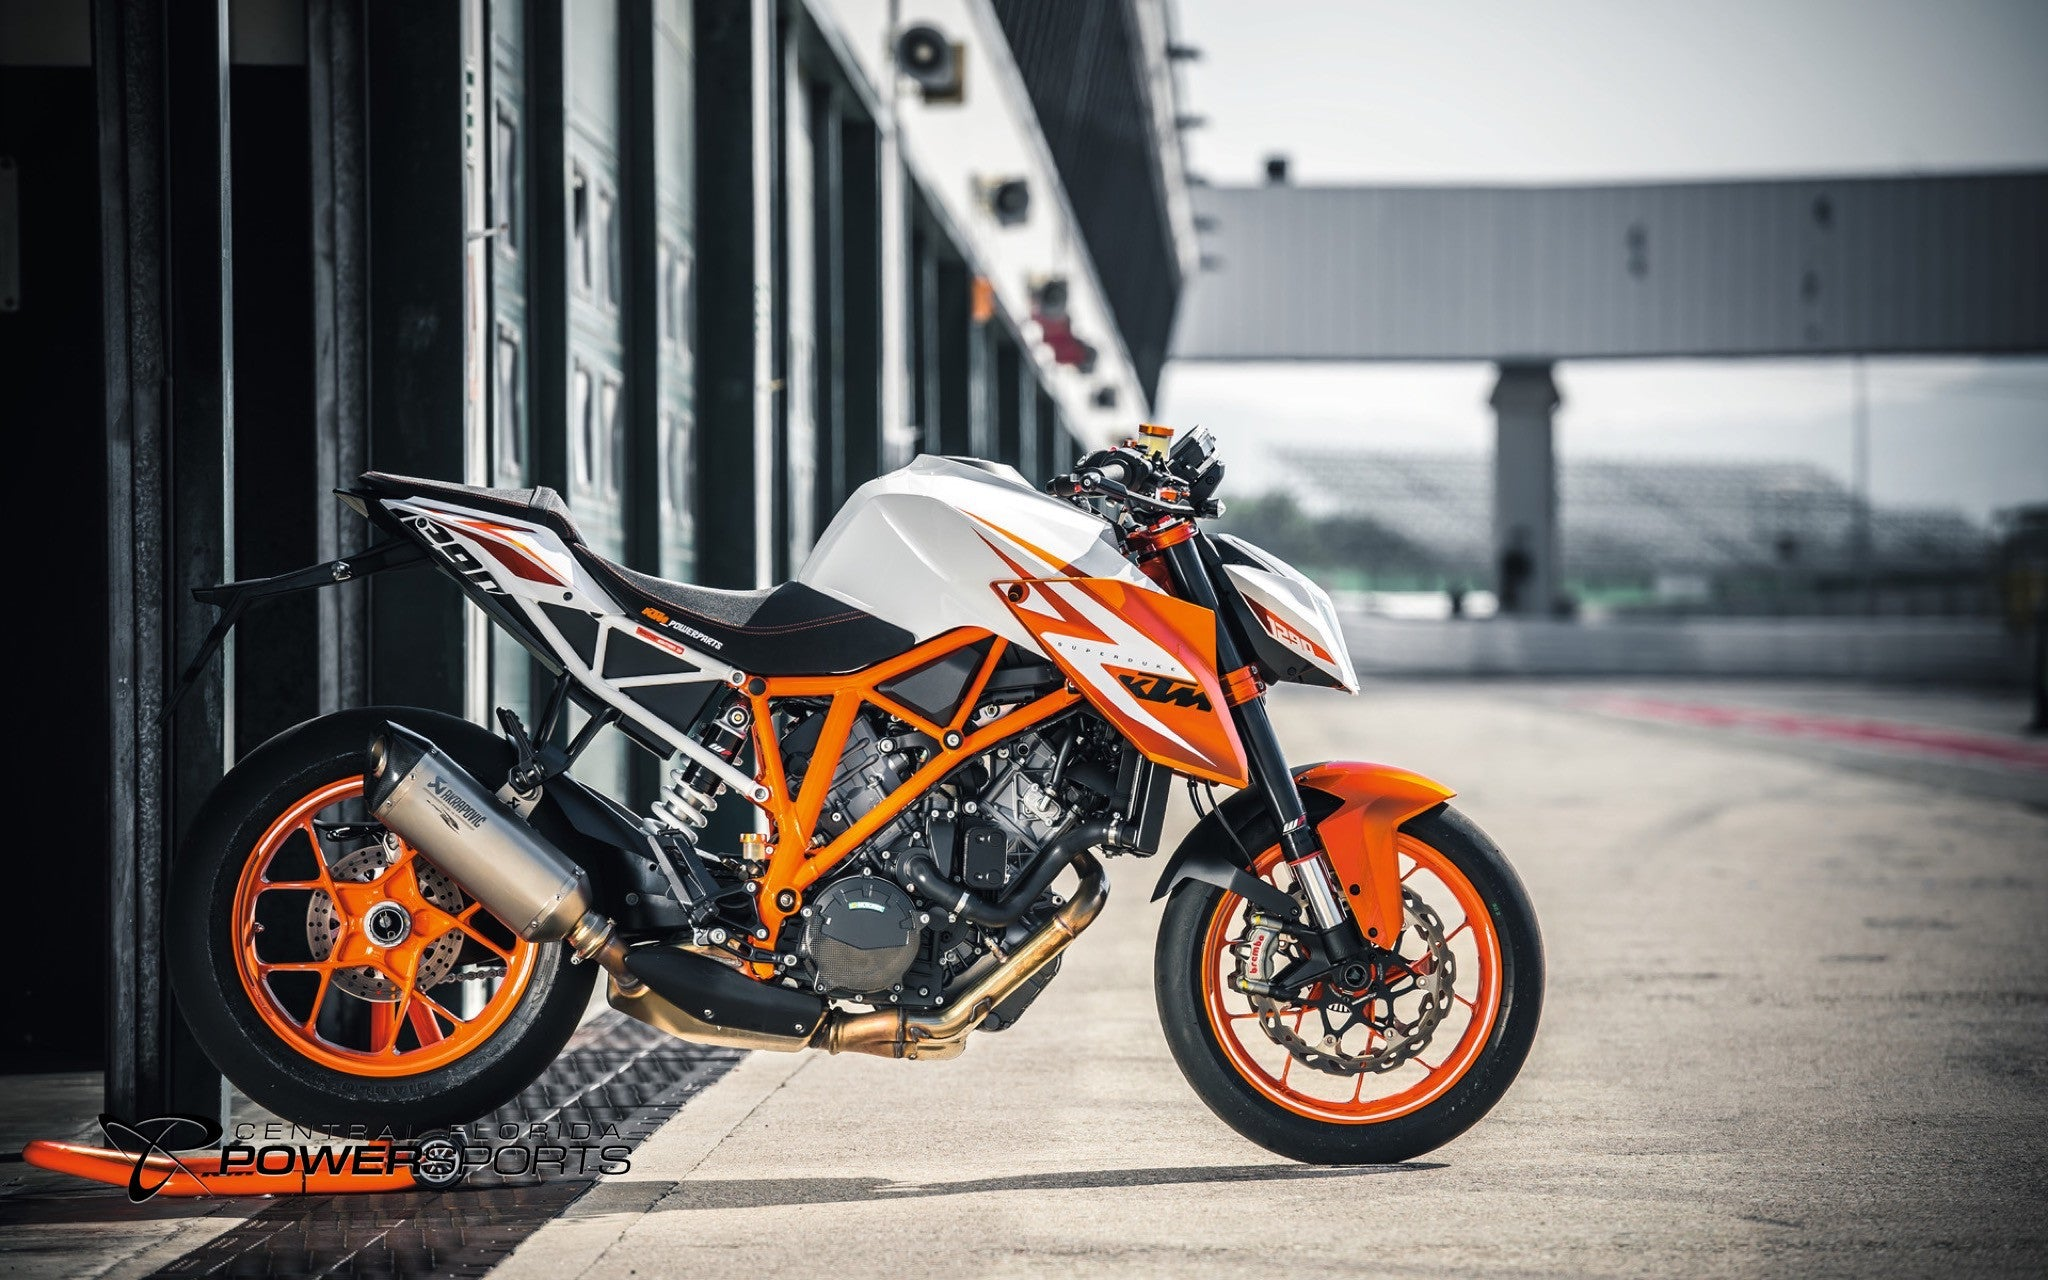 Introducing the 2016 KTM 1290 Super Duke R Special Edition